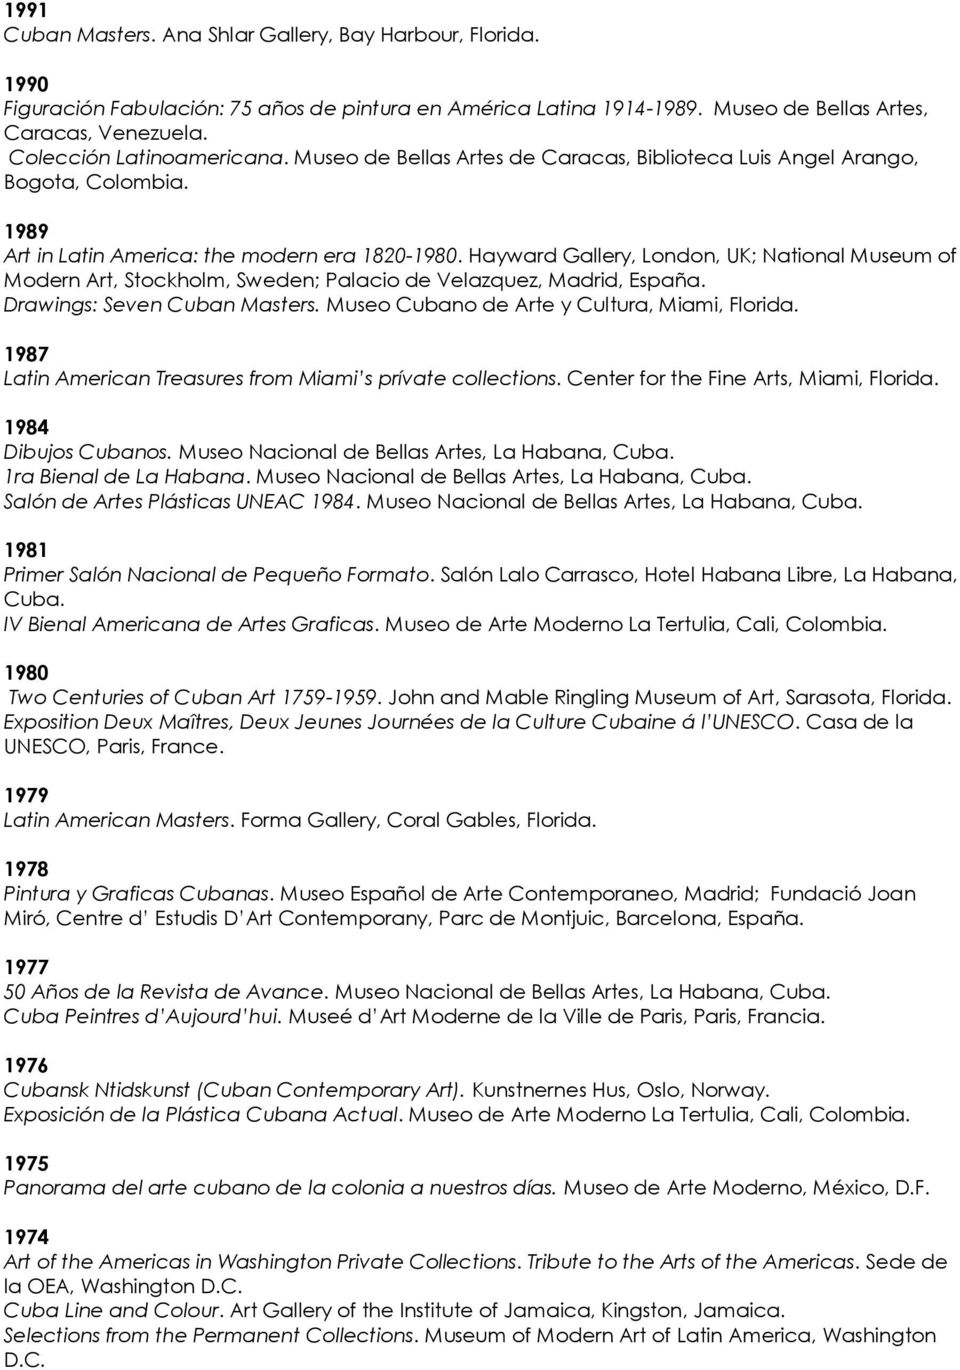 Hayward Gallery, London, UK; National Museum of Modern Art, Stockholm, Sweden; Palacio de Velazquez, Madrid, España. Drawings: Seven Cuban Masters. Museo Cubano de Arte y Cultura, Miami, Florida.